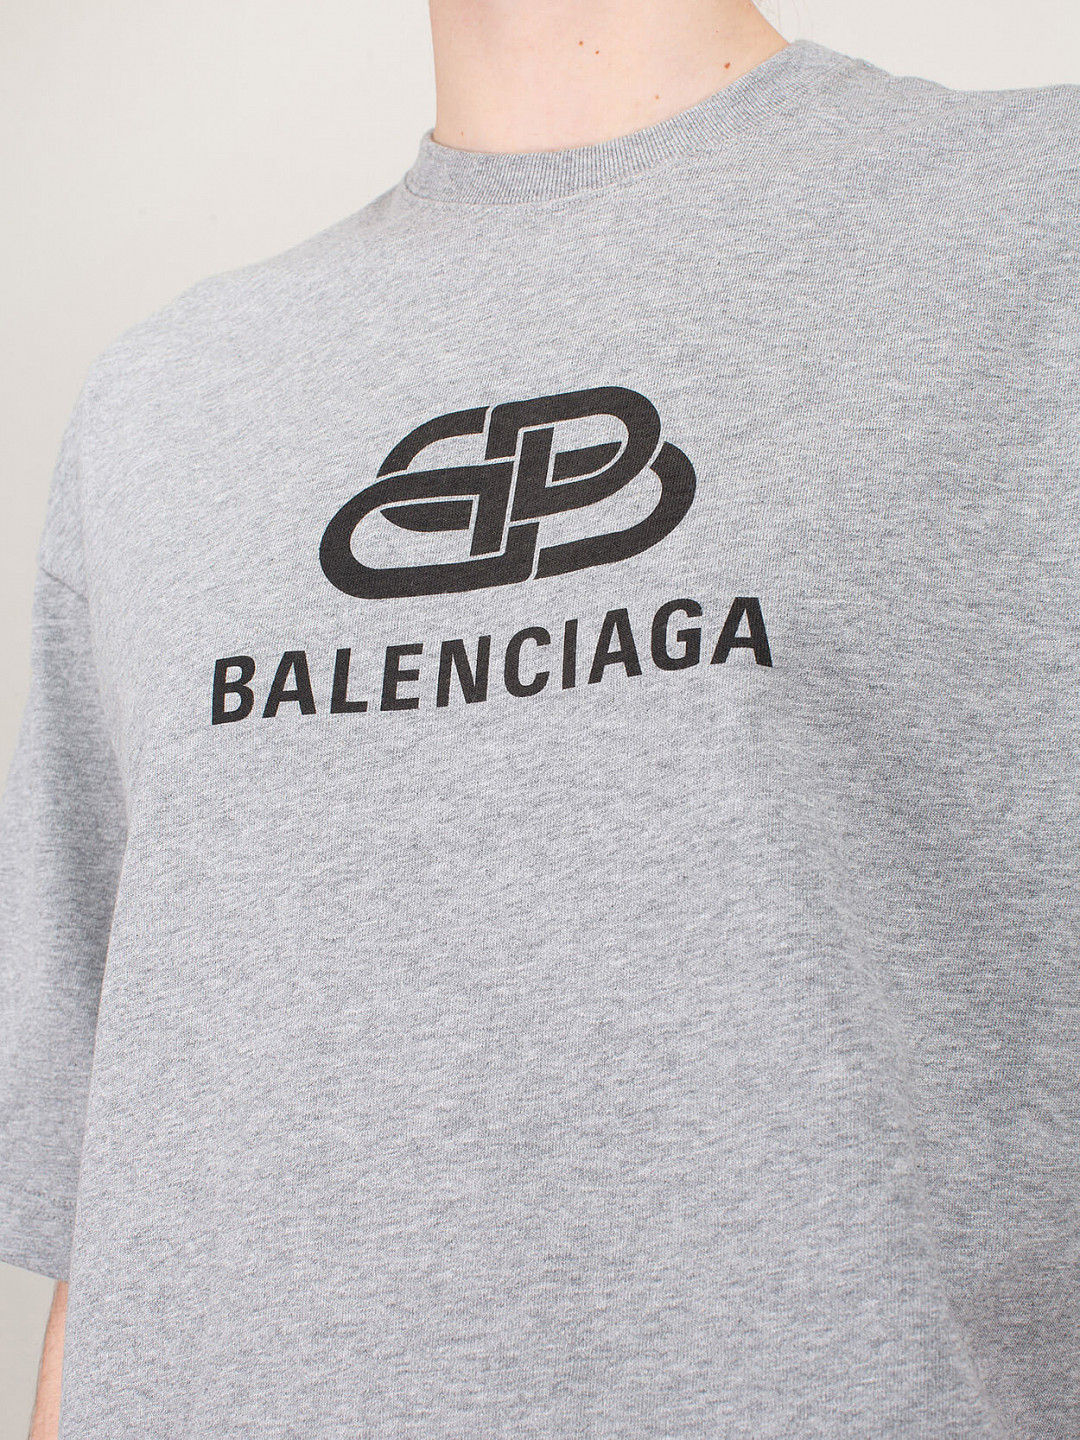 BB Balenciaga regular T-Shirt